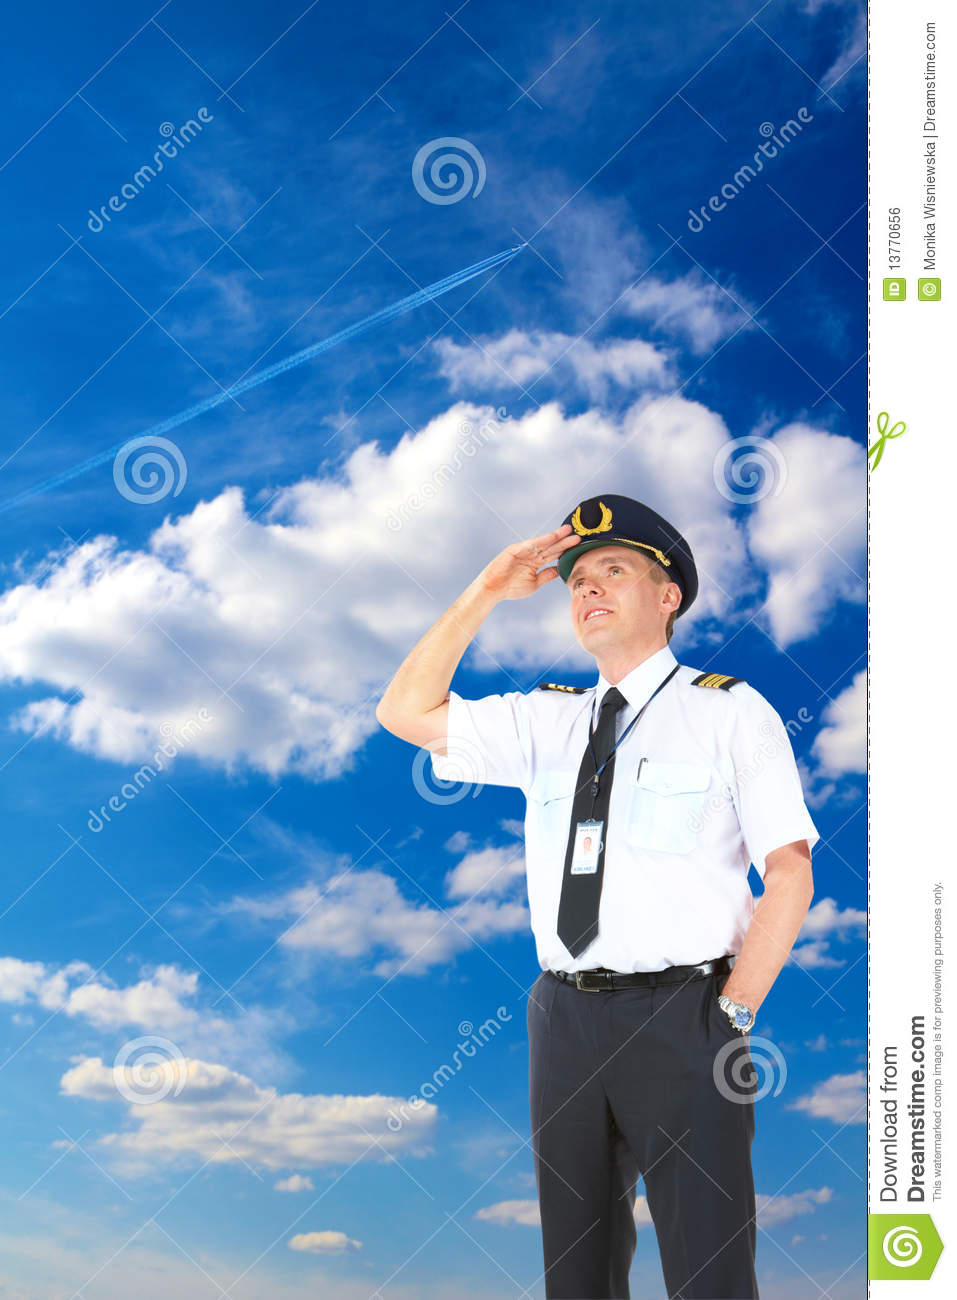 Airline pilot looking upwards